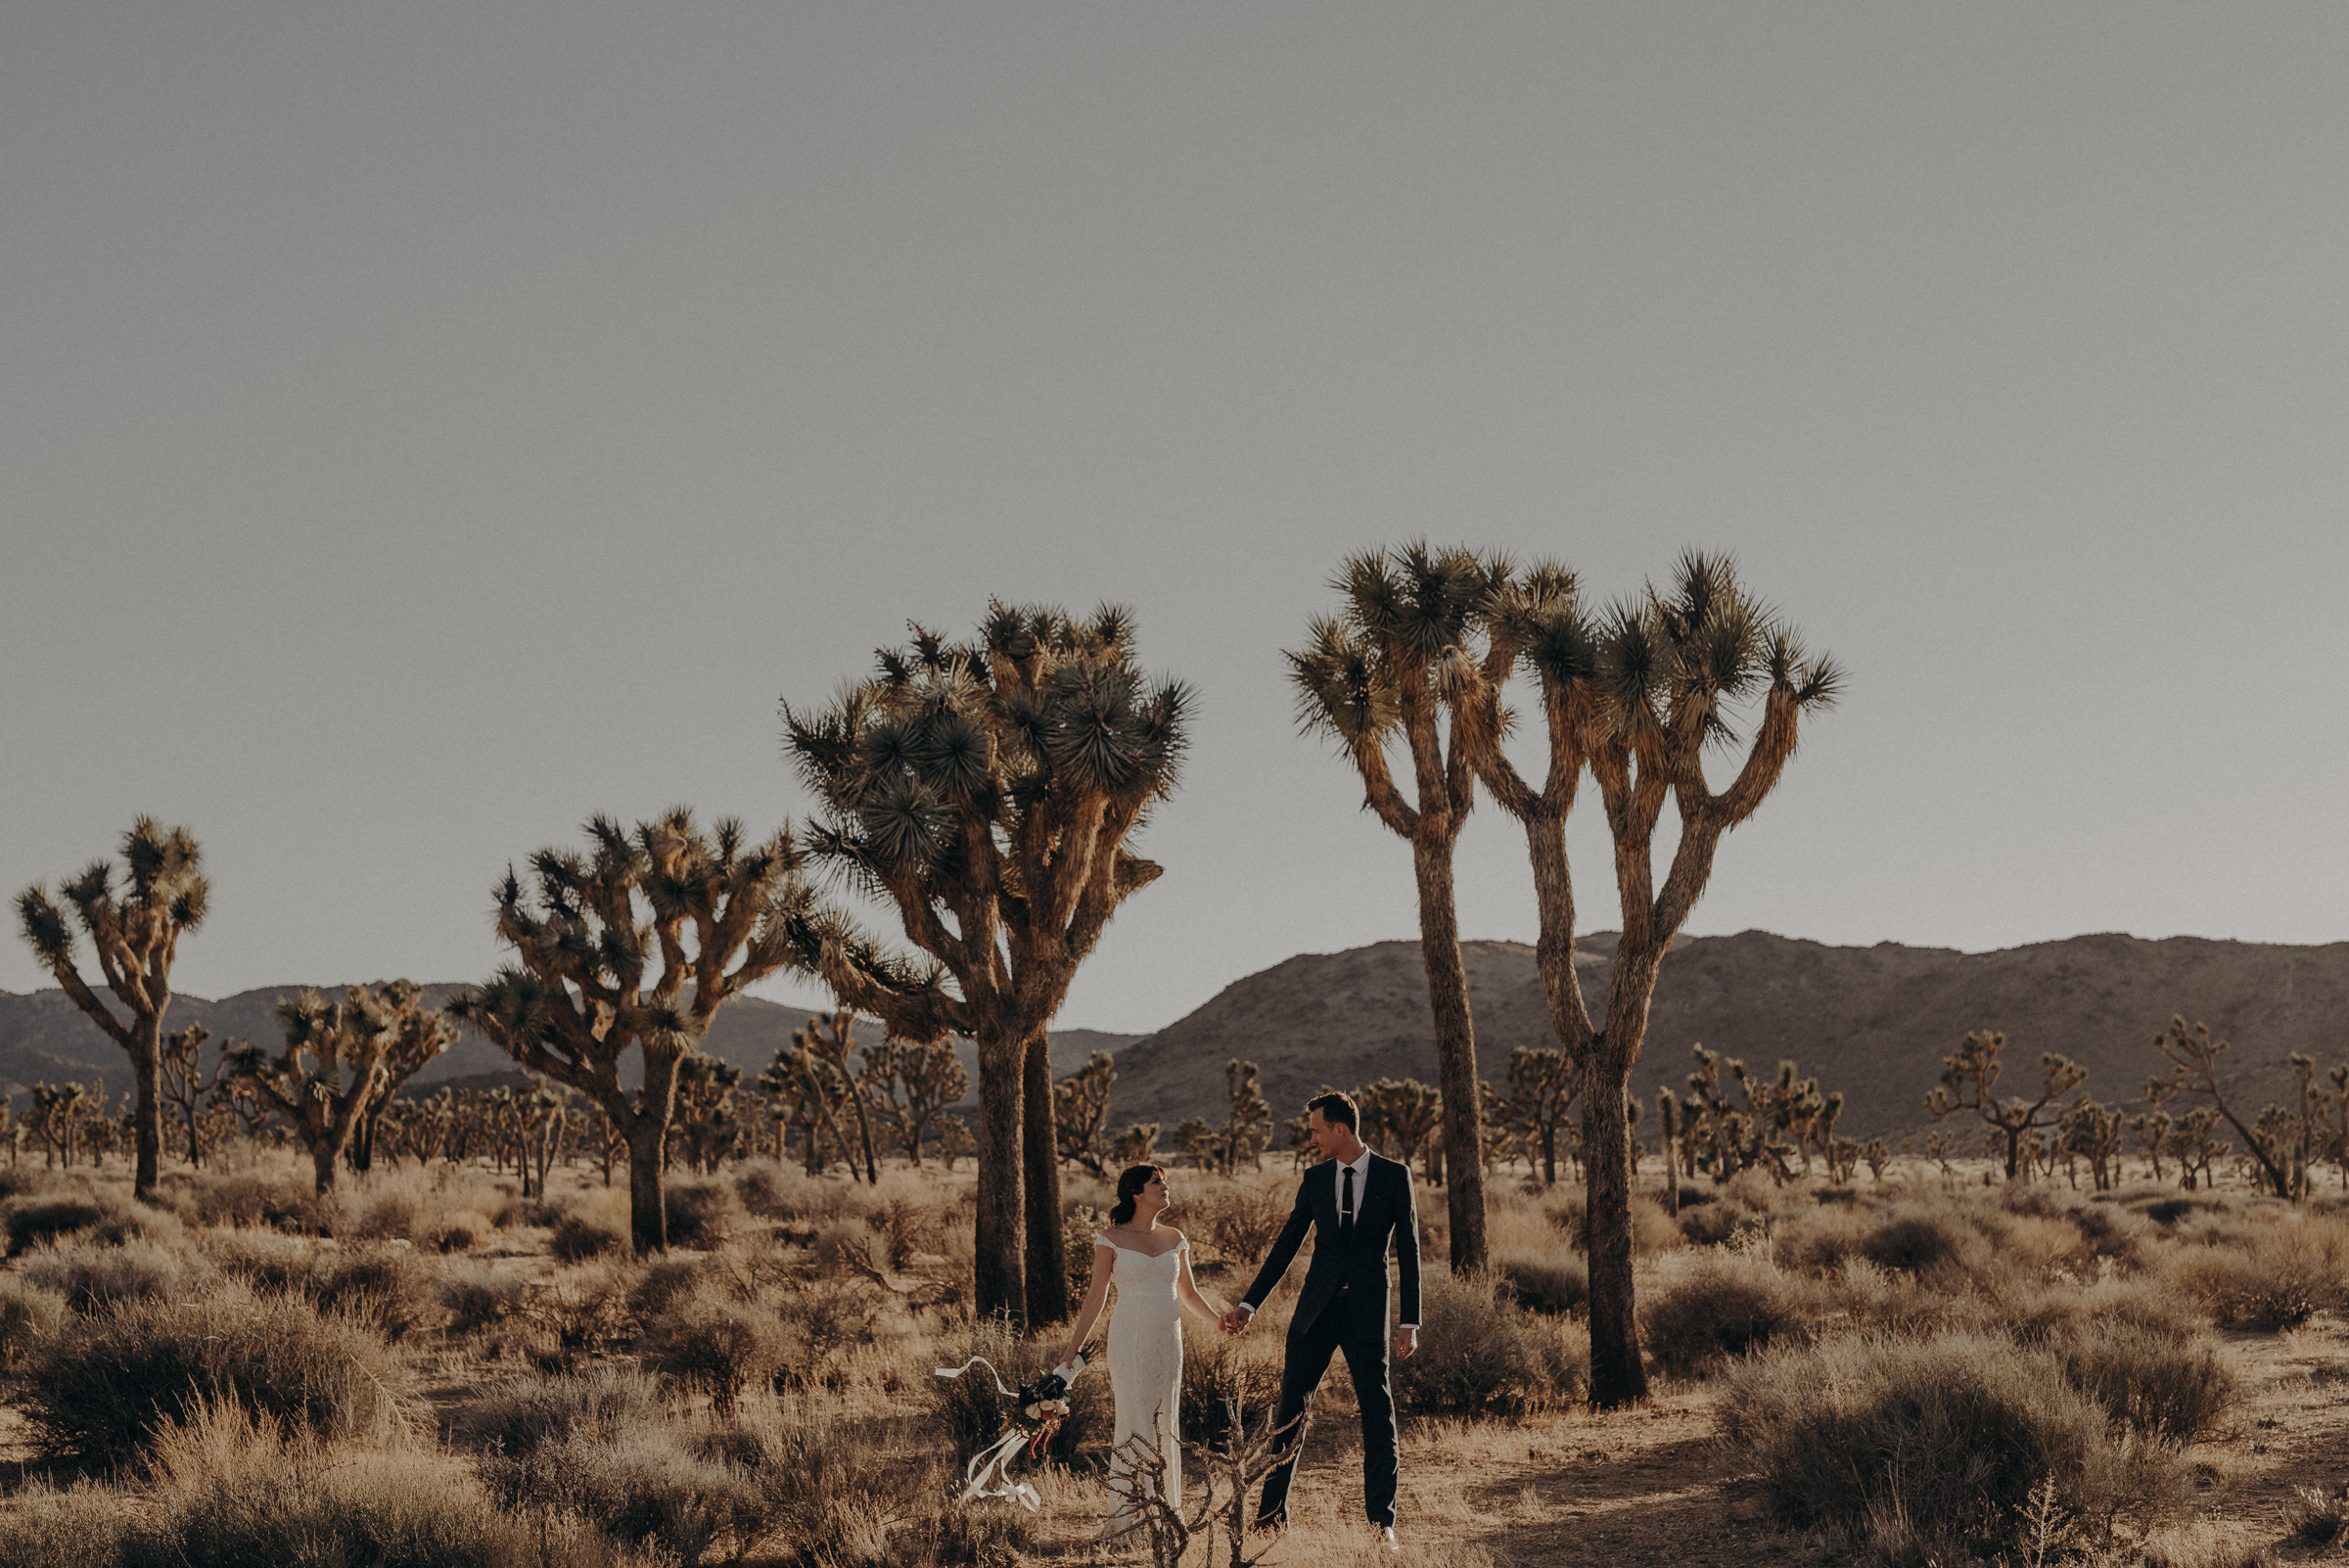 Joshua Tree Elopement - Los Angeles Wedding Photographers - IsaiahAndTaylor.com-082.jpg